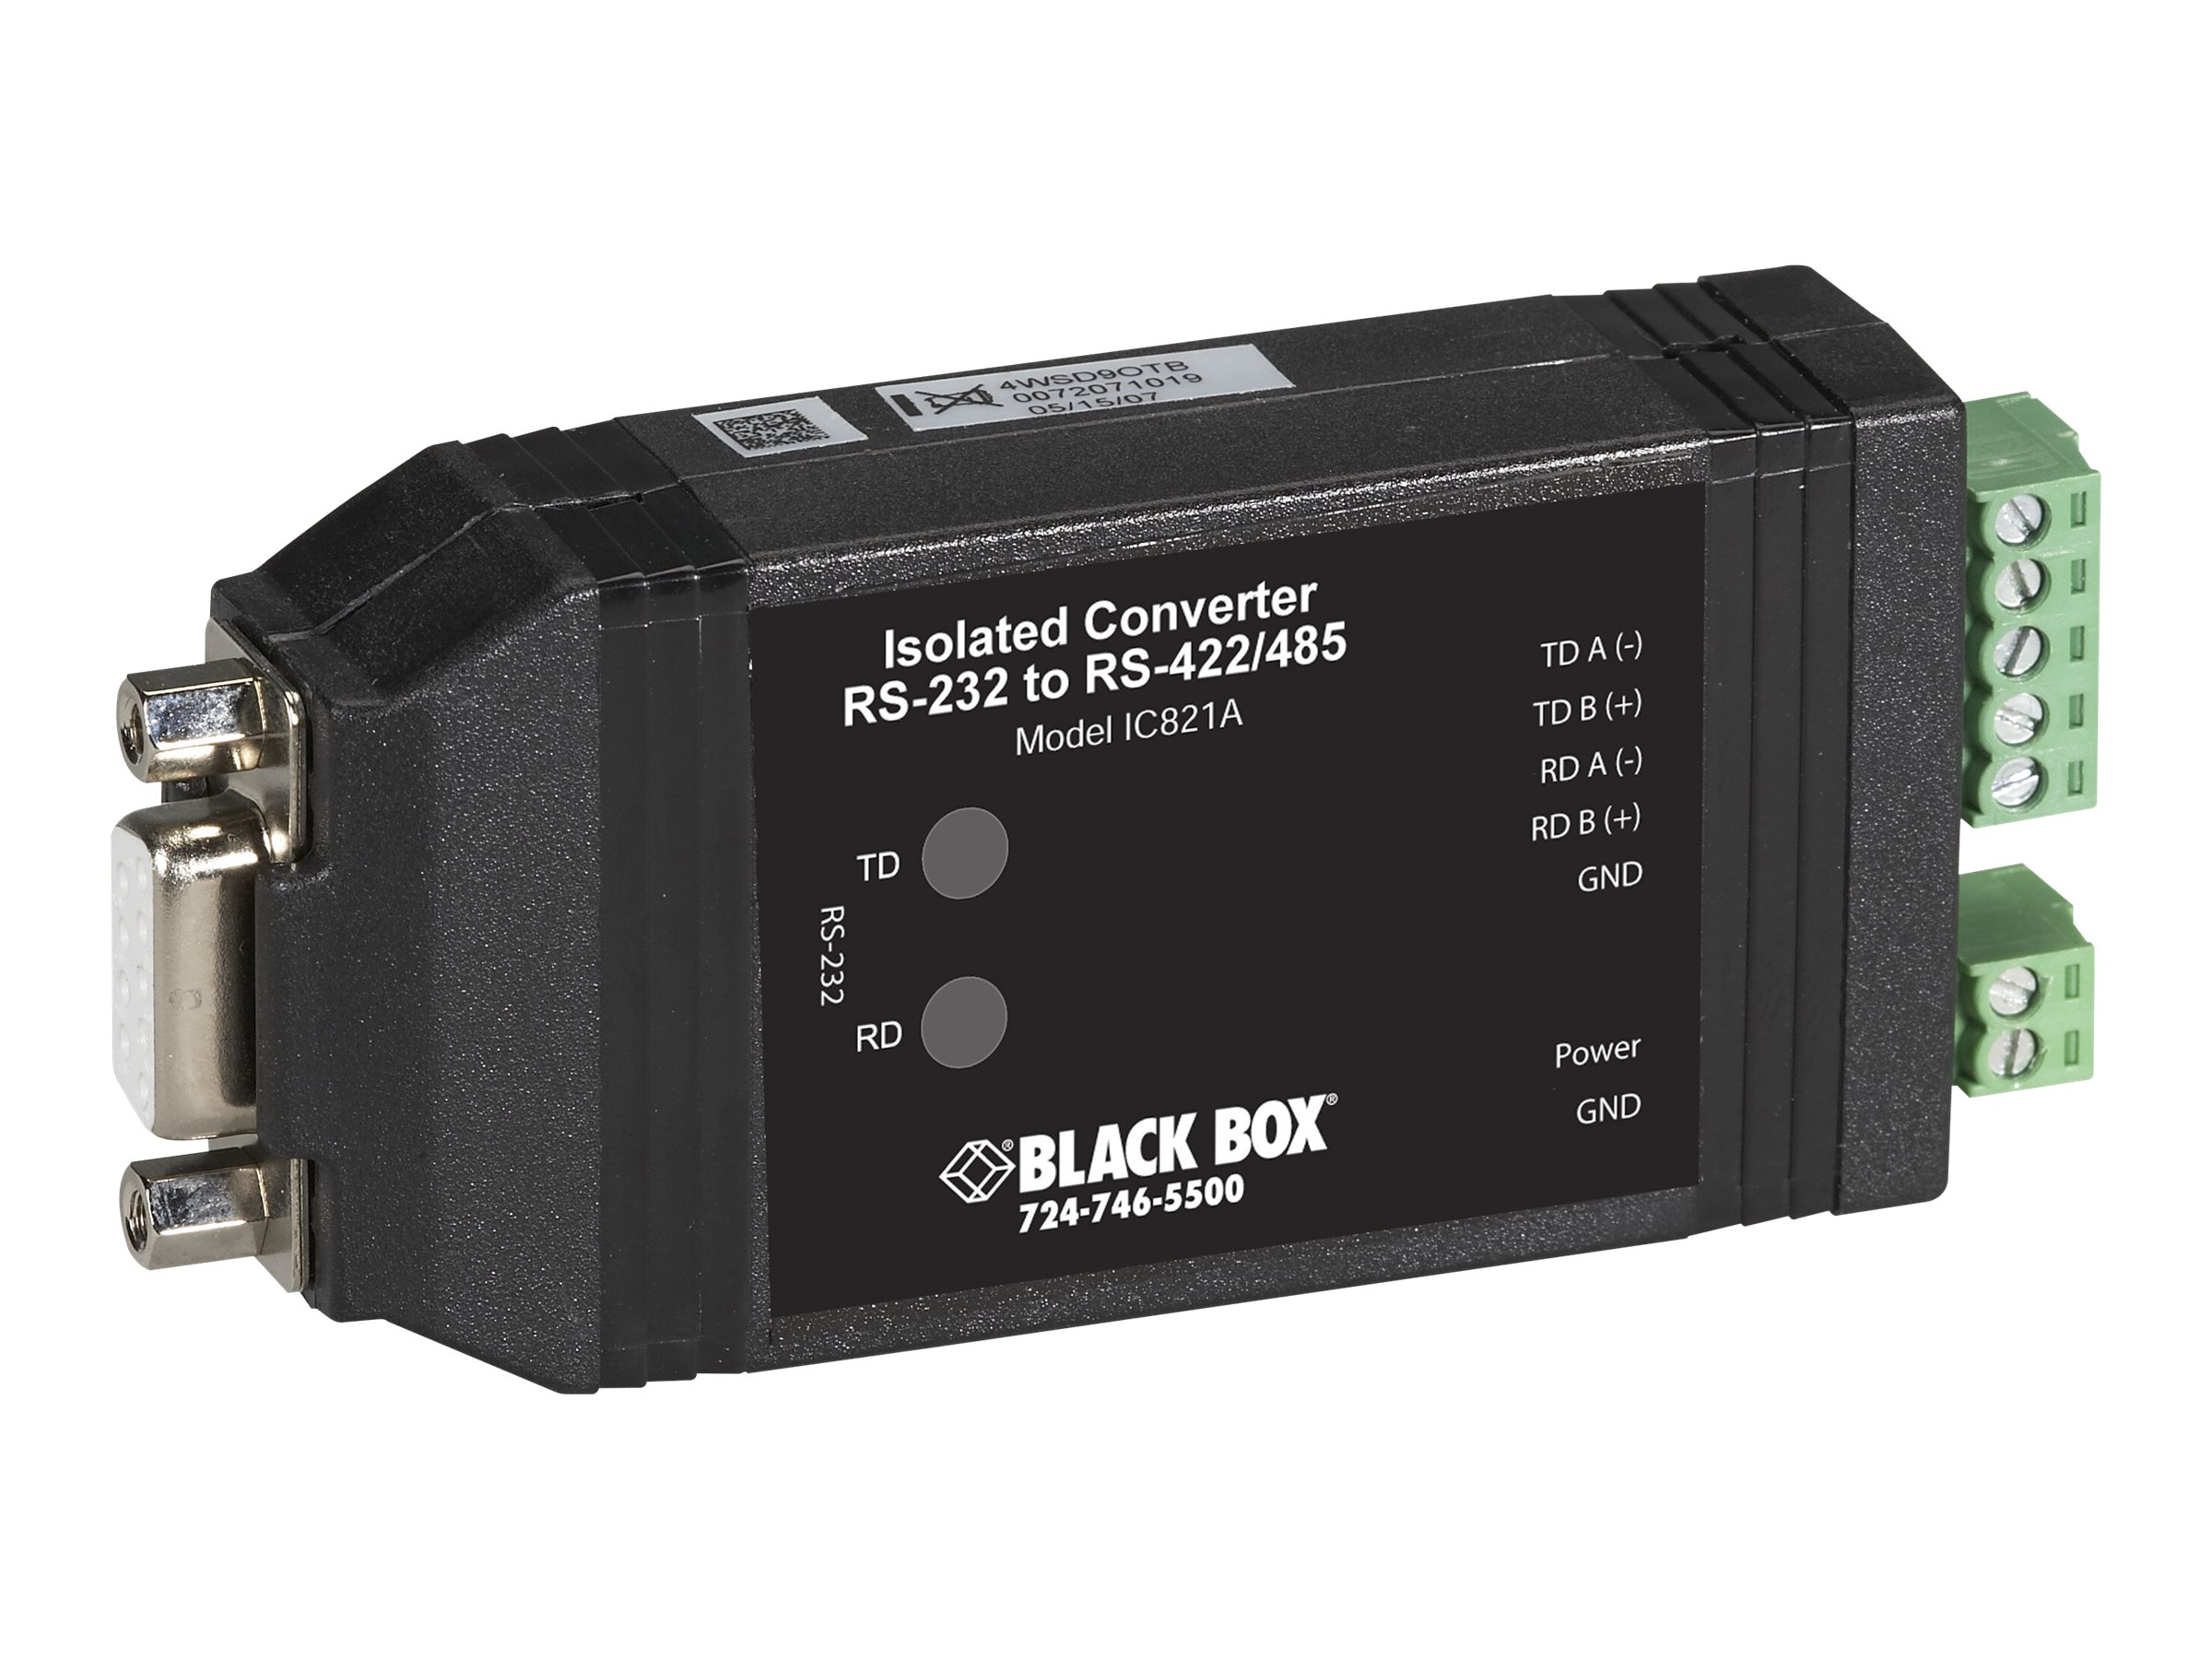 Black Box Universal RS-232<->RS-422/485 Converter with Opto-Isolation - serial adapter